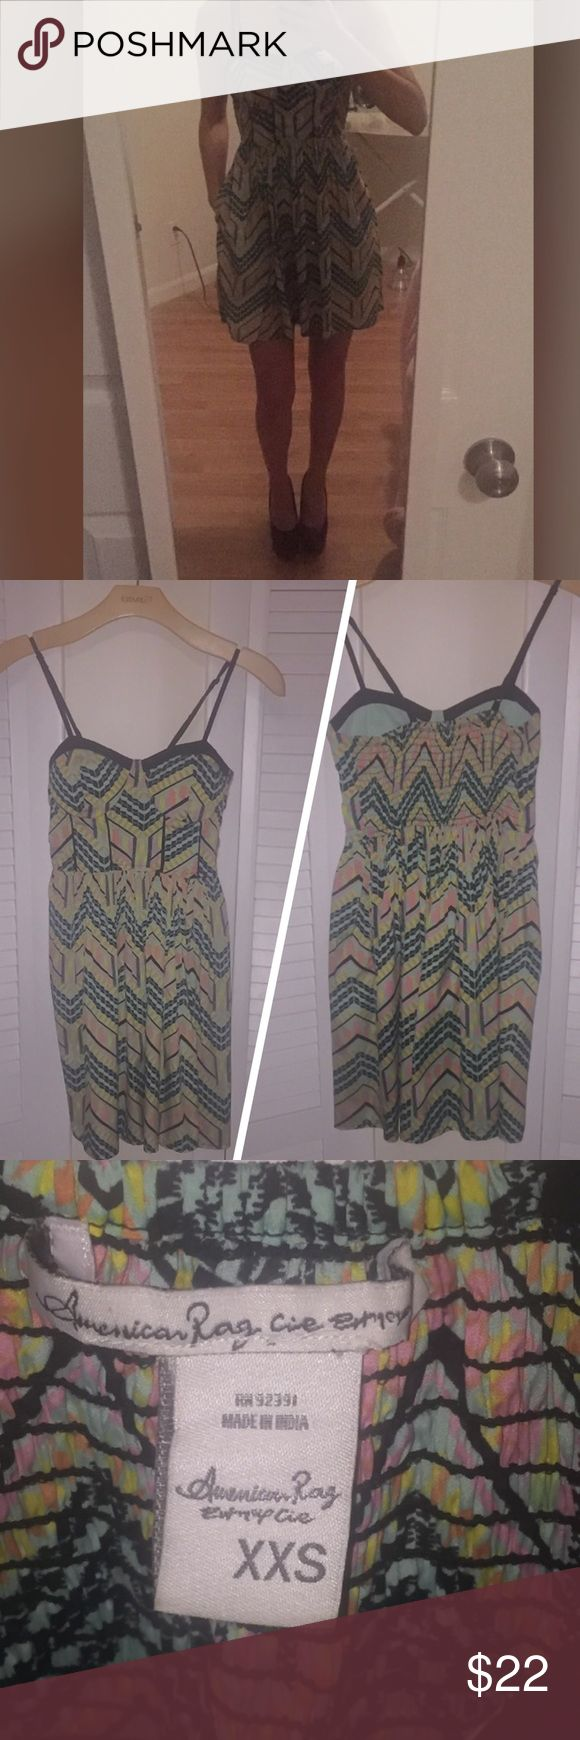 AMERICAN RAG DRESS SIZE XXS! NWOT! 💕💕💕💕💕💕💕 Fun and flirty dress from American Rag. Has cute pockets too. Purchased at Macy's. Never worn! Size XXS! 💎💎💎💎💎💎💎💎💎💎💎💎💎💎💎 American Rag Dresses Mini